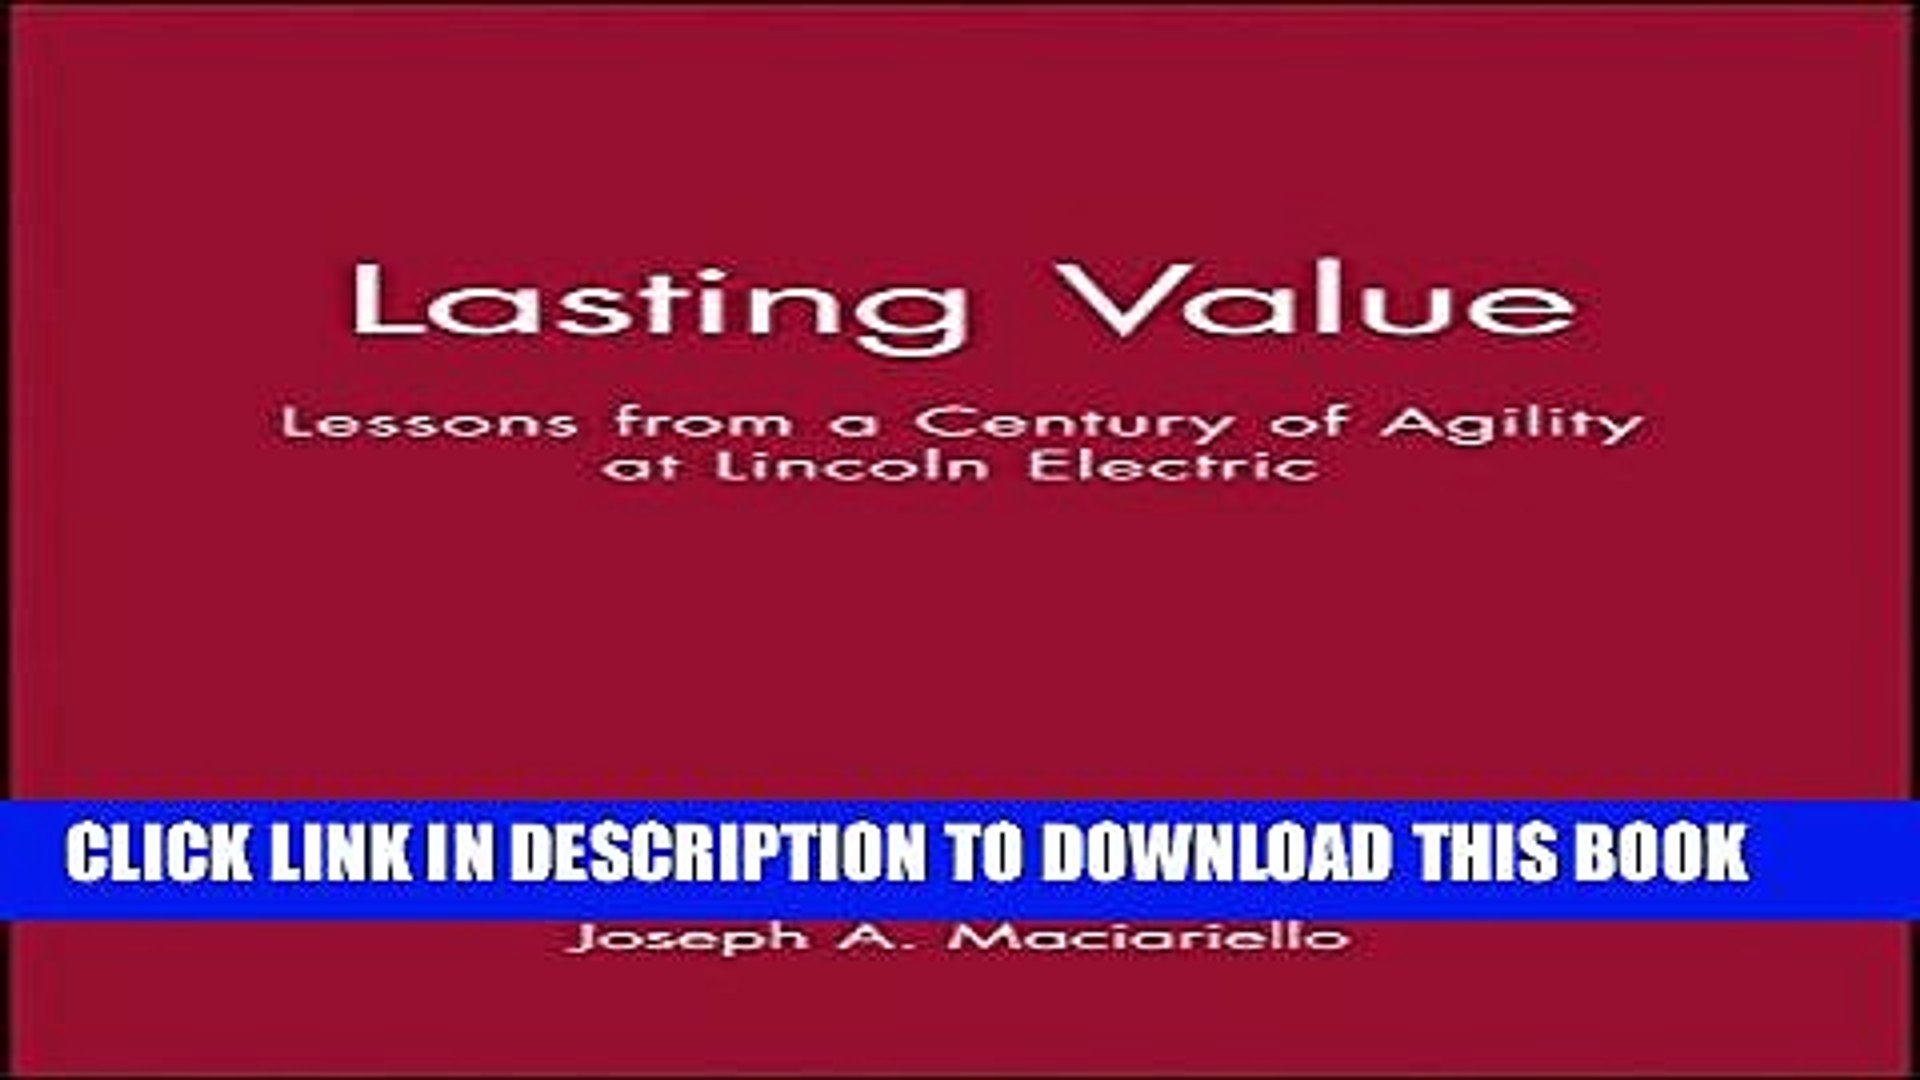 [PDF] Lasting Value: Lessons from a Century of Agility at Lincoln Electric  Popular Online